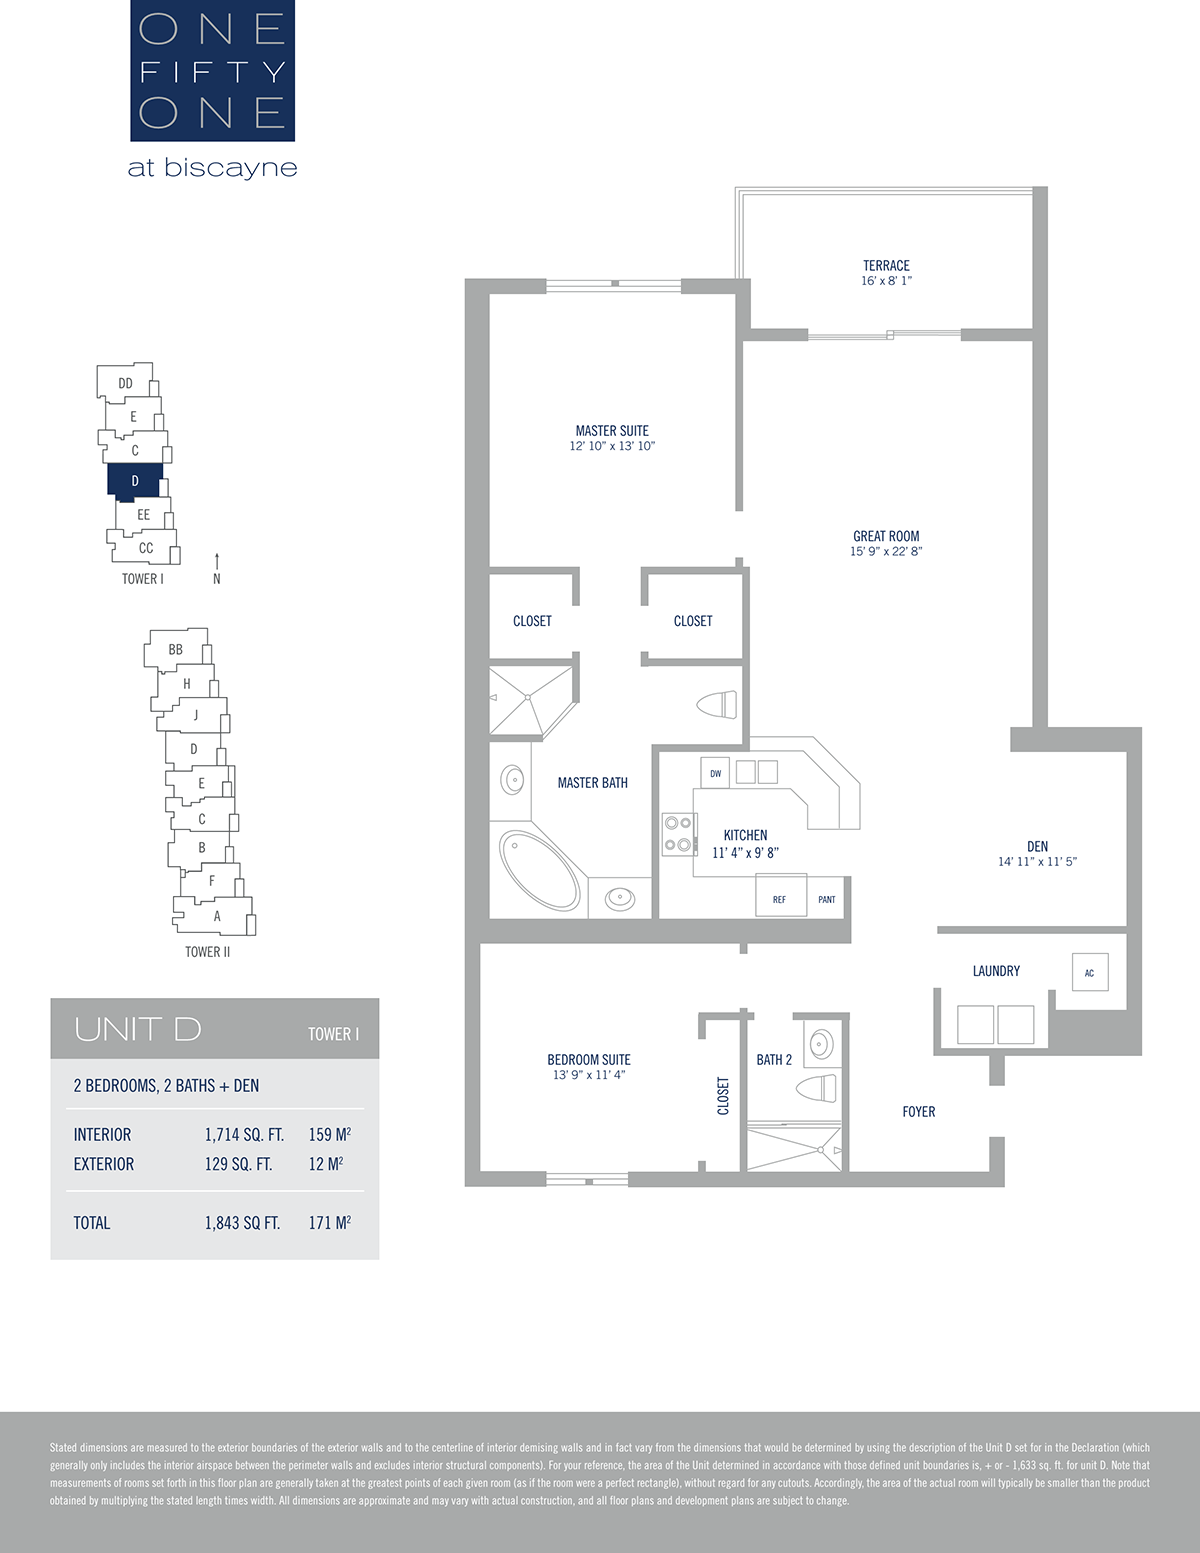 One Fifty One At Biscayne - Floorplan 13